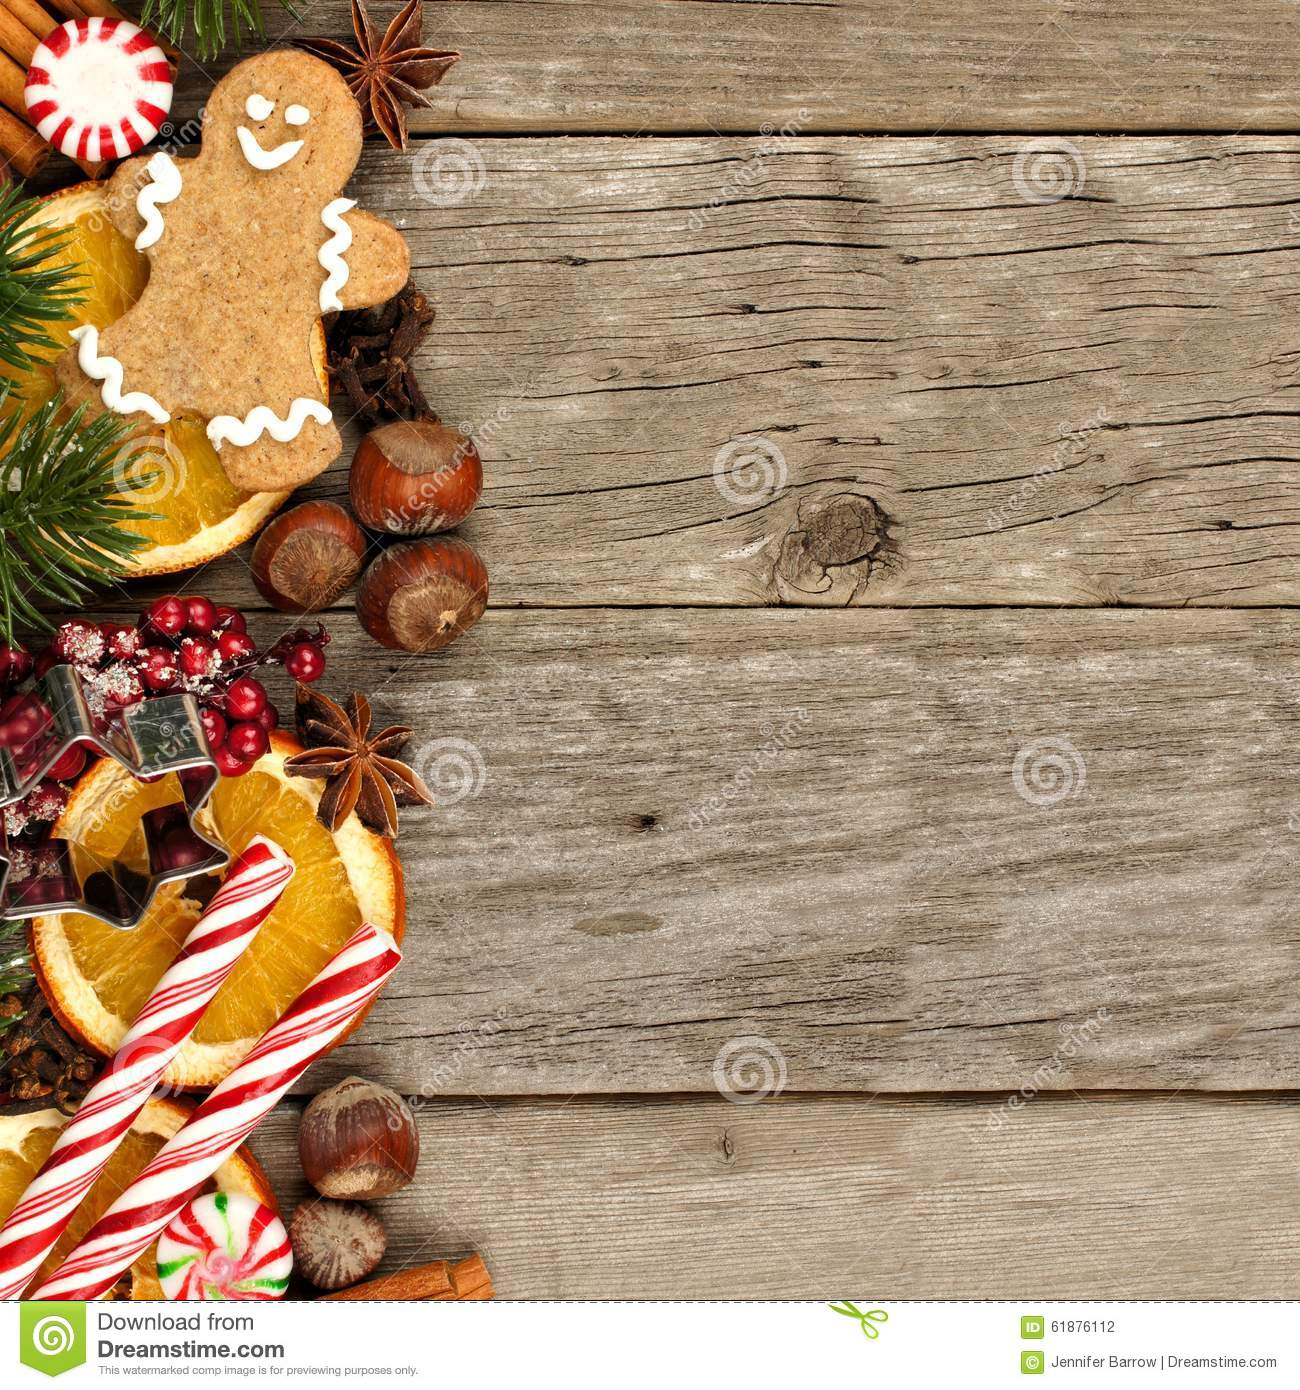 Side border of Christmas decor and treats over rustic wood